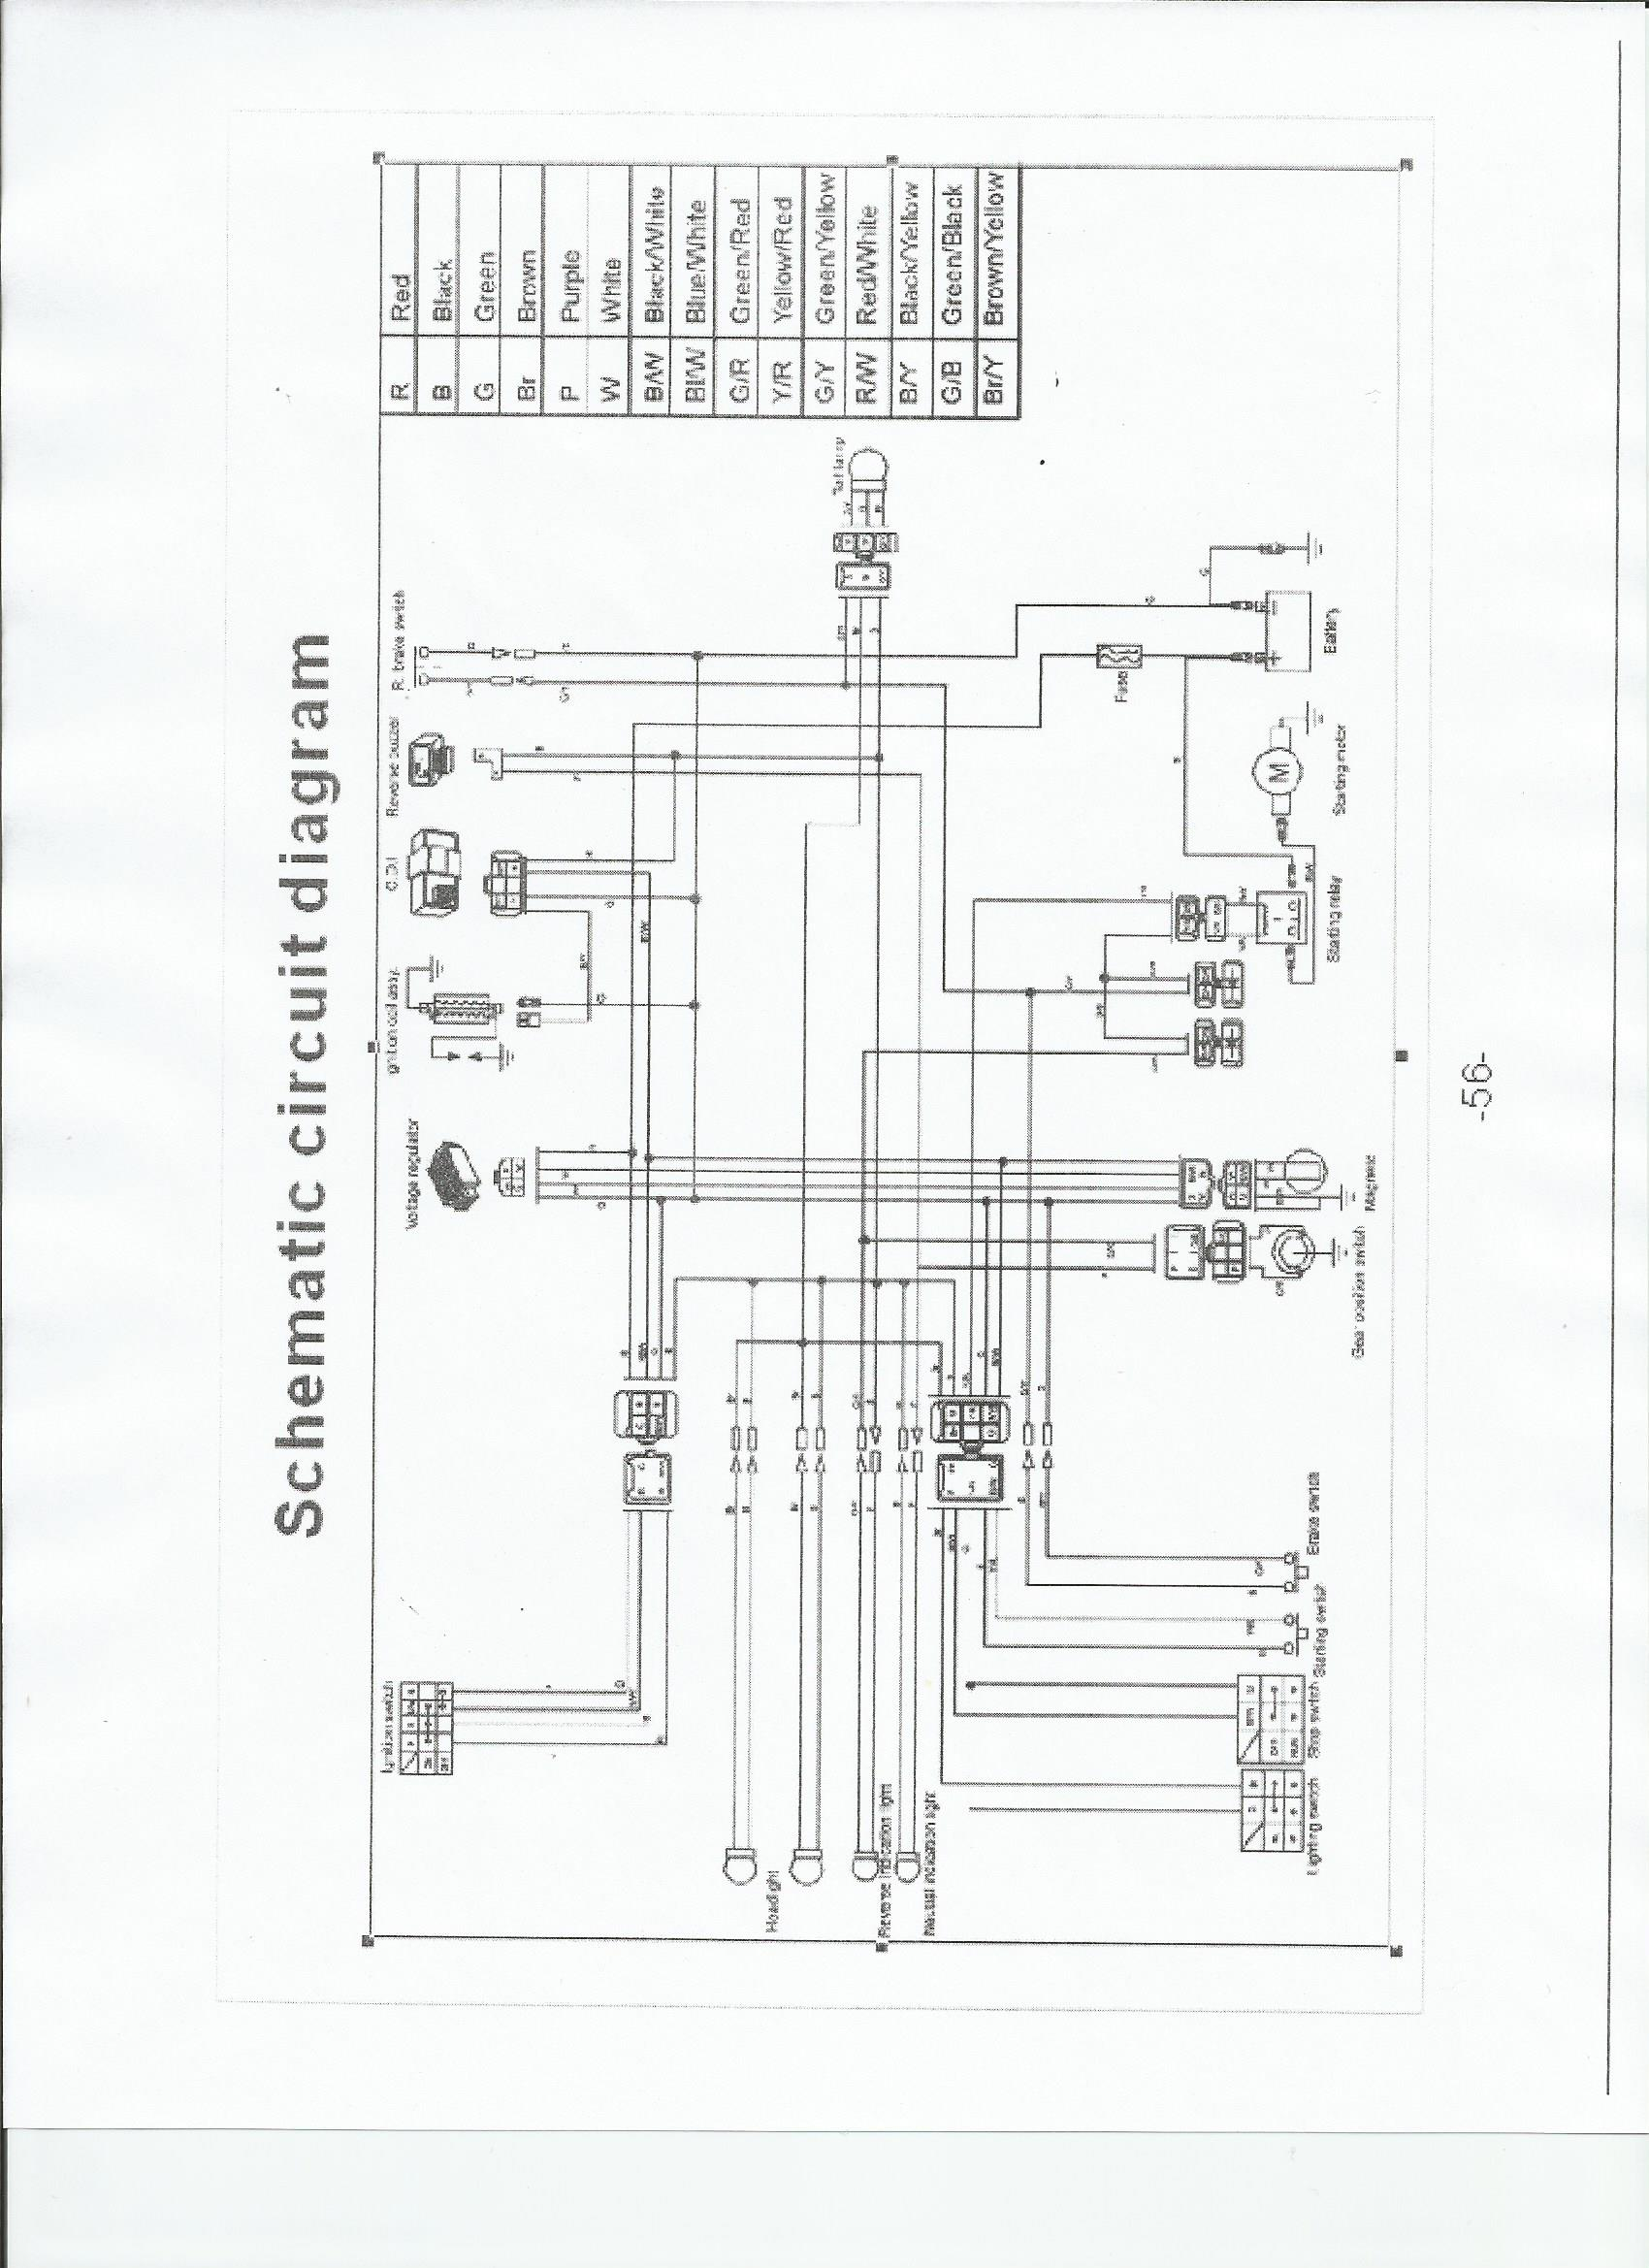 hight resolution of taotao mini and youth atv wiring schematic familygokarts support 110cc pocket bike wiring diagram tao 110cc wiring diagram